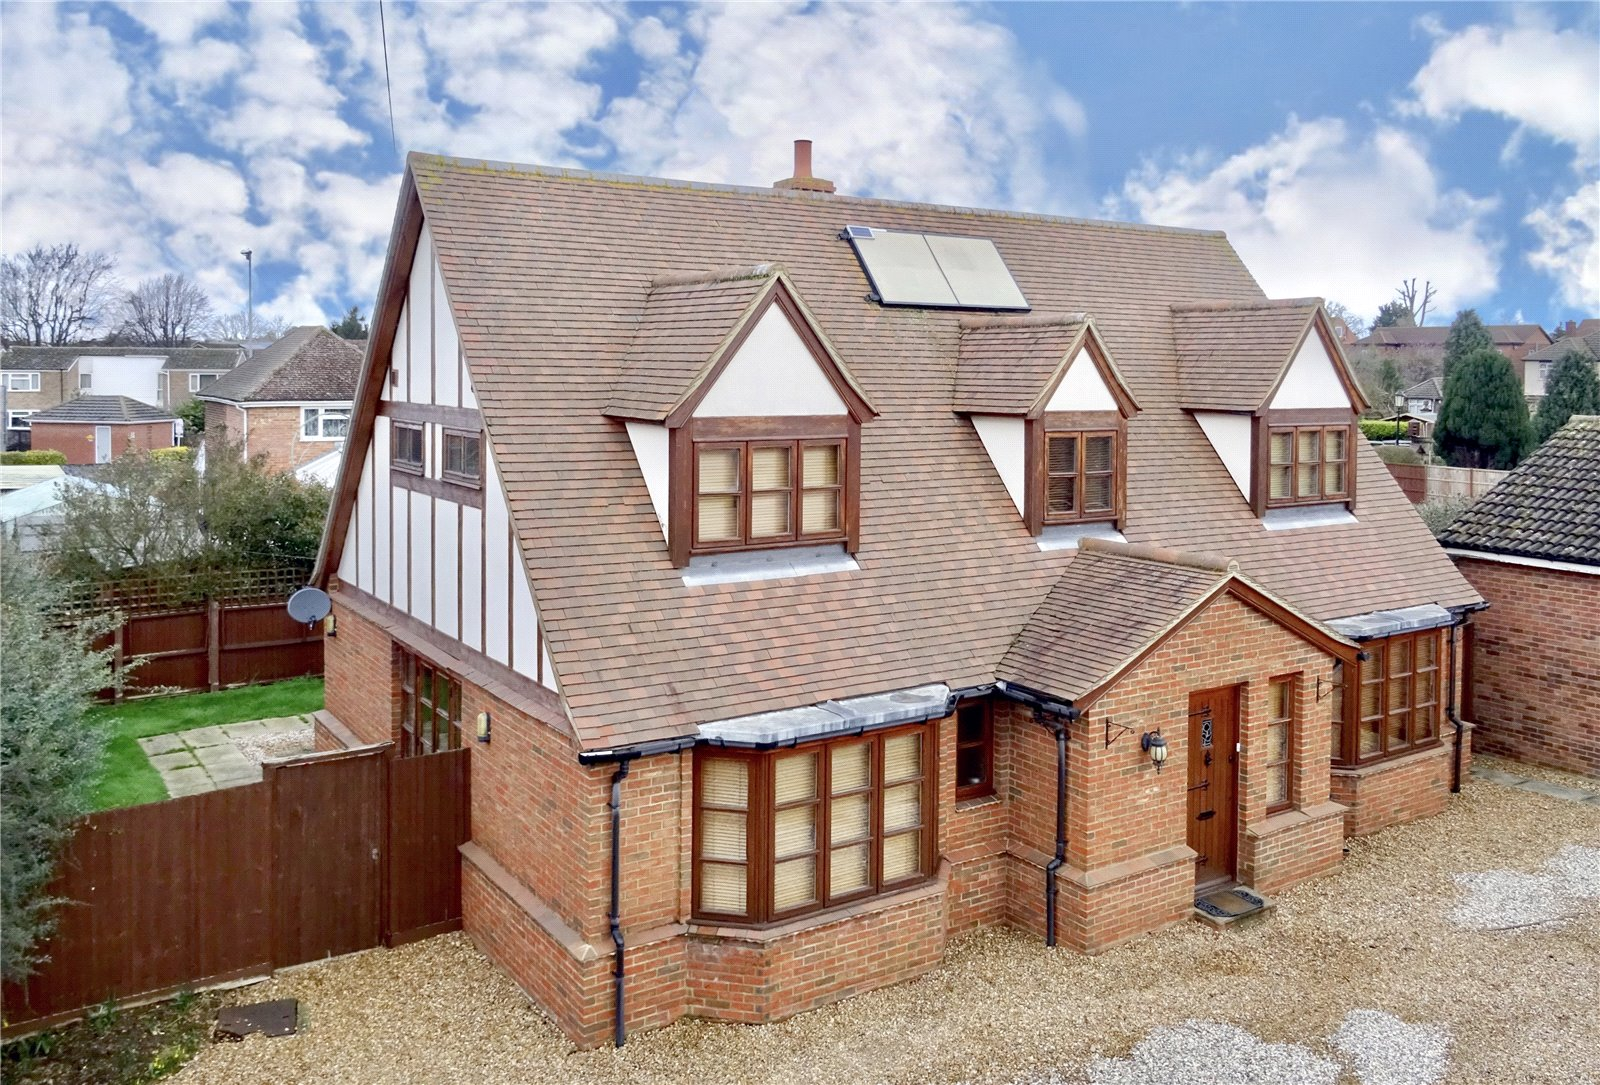 4 bed house for sale in Cromwell Road, St. Neots - Property Image 1